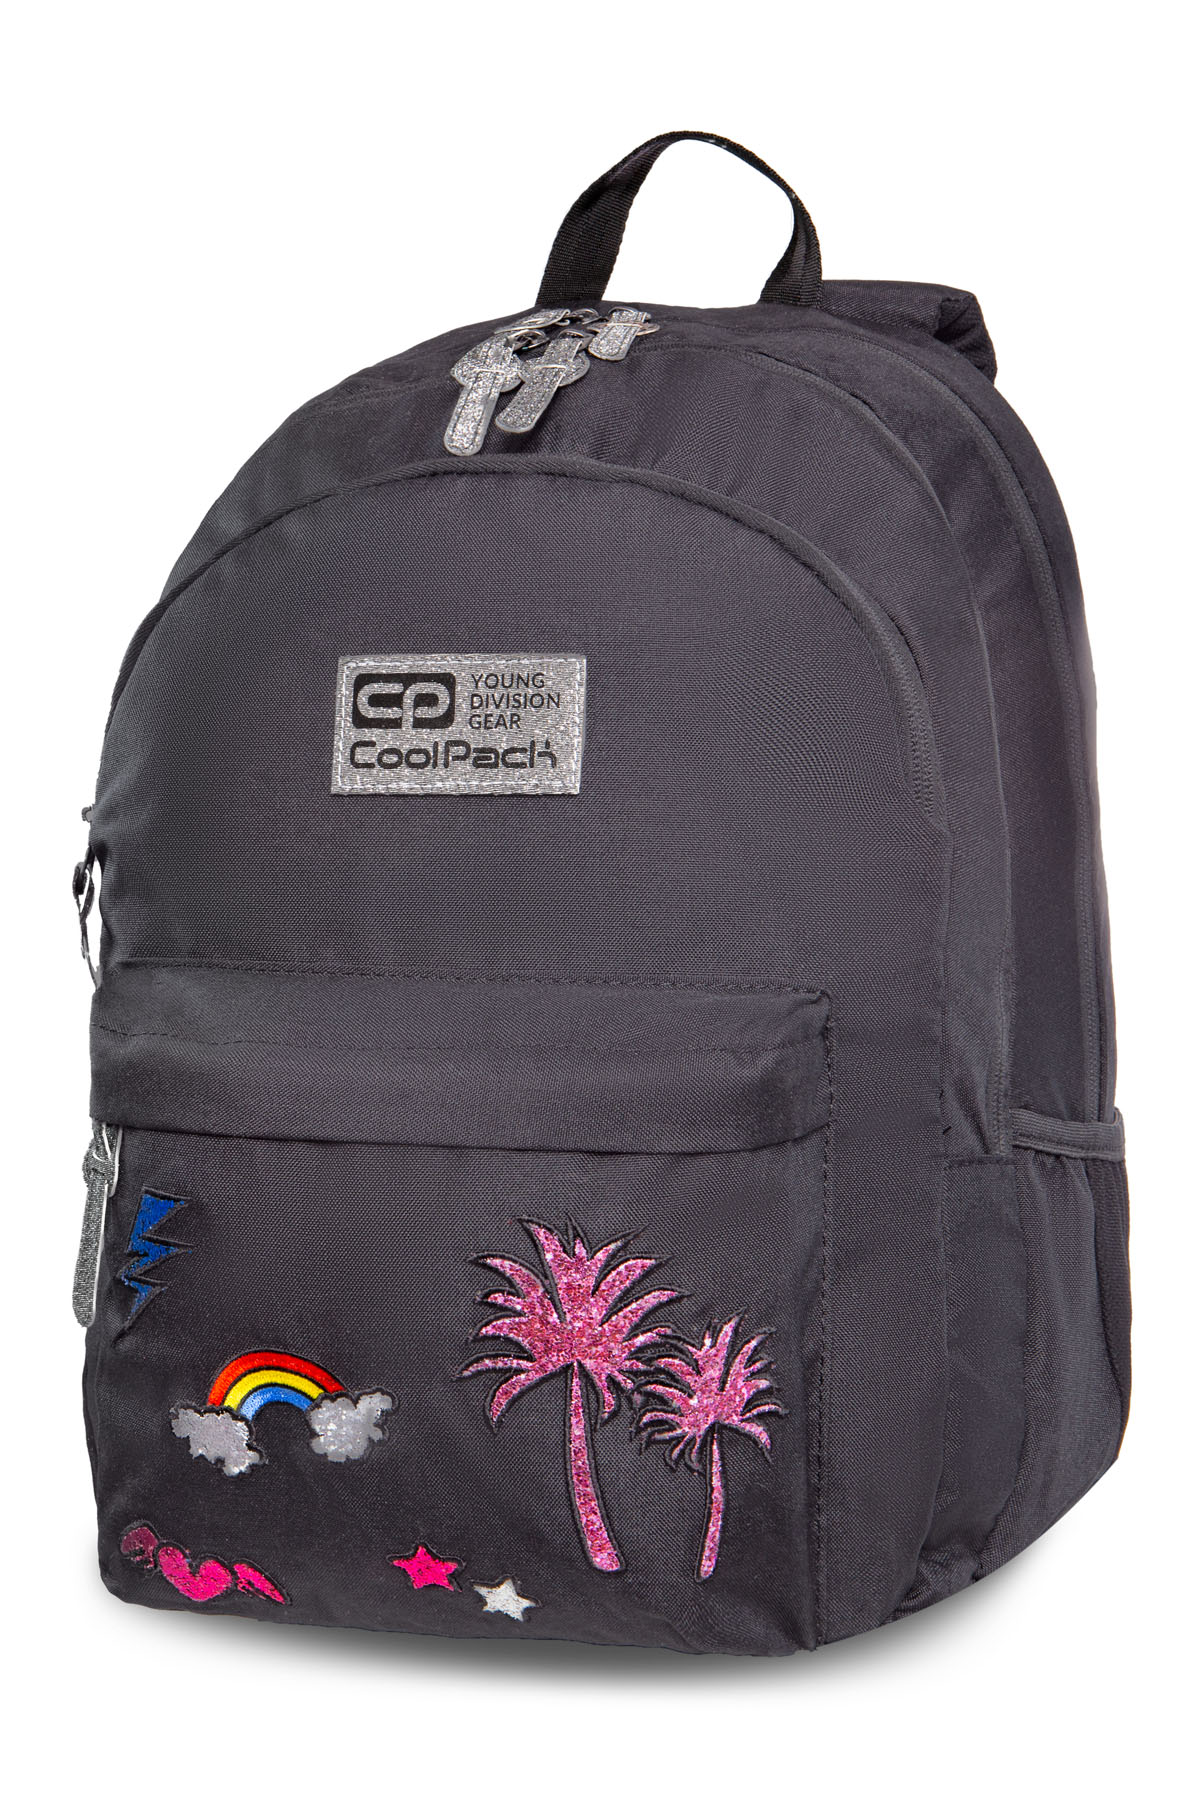 Coolpack - hippie - youth backpack - sparkling badges gray